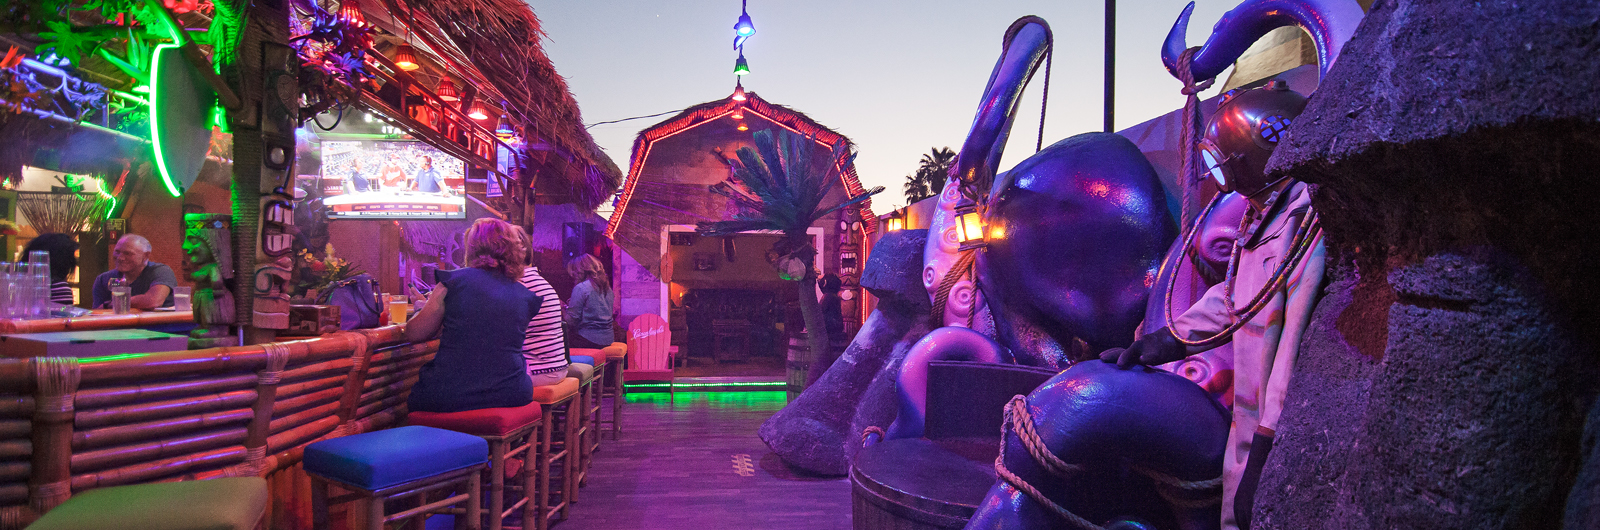 A Life-Affirming Tiki Bar Stashed Behind an Italian Joint